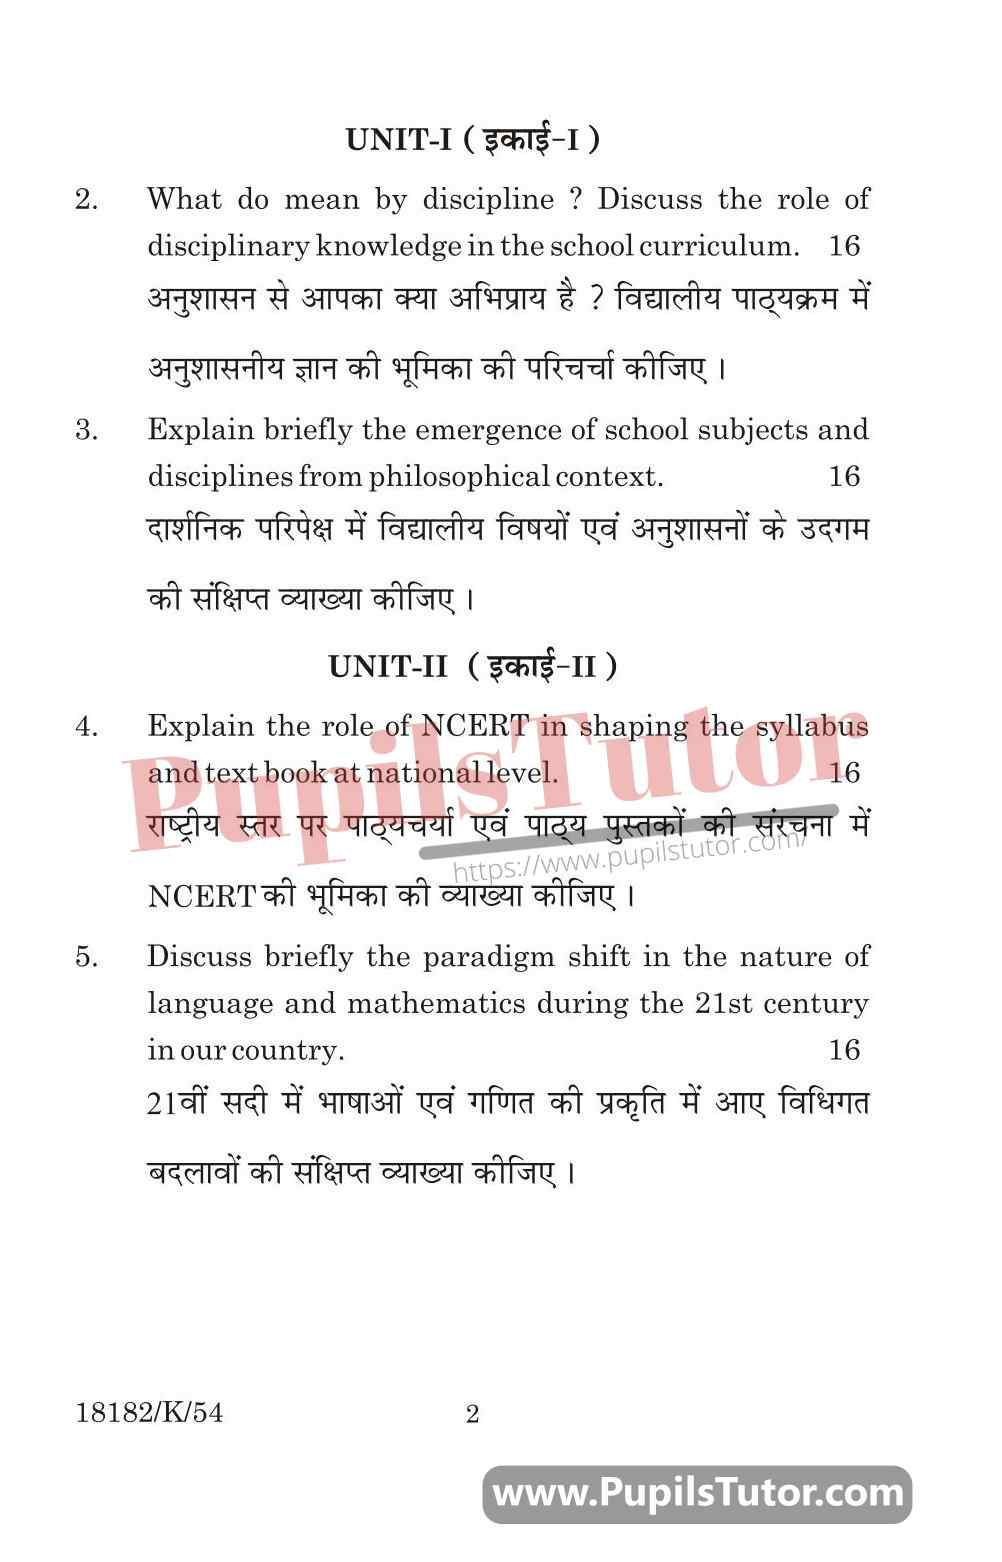 KUK (Kurukshetra University, Haryana) Understanding Disciplines And Subjects Question Paper 2020 For B.Ed 1st And 2nd Year And All The 4 Semesters In English And Hindi Medium Free Download PDF - Page 2 - www.pupilstutor.com